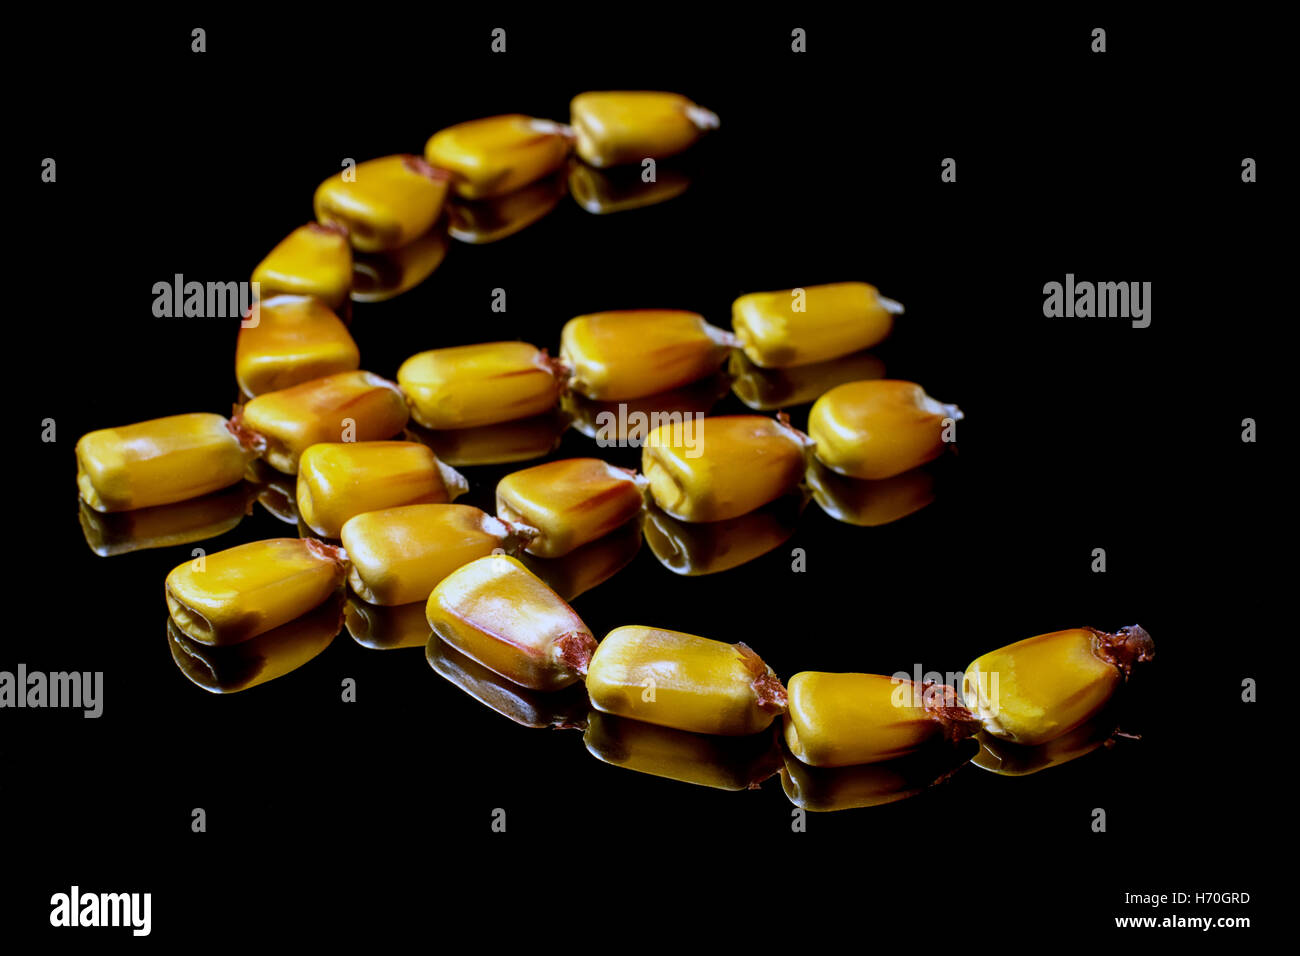 Corn kernels forming Euro symbol. Corn market. Corn kernels. Selective focus and shallow Depth of field - Stock Image